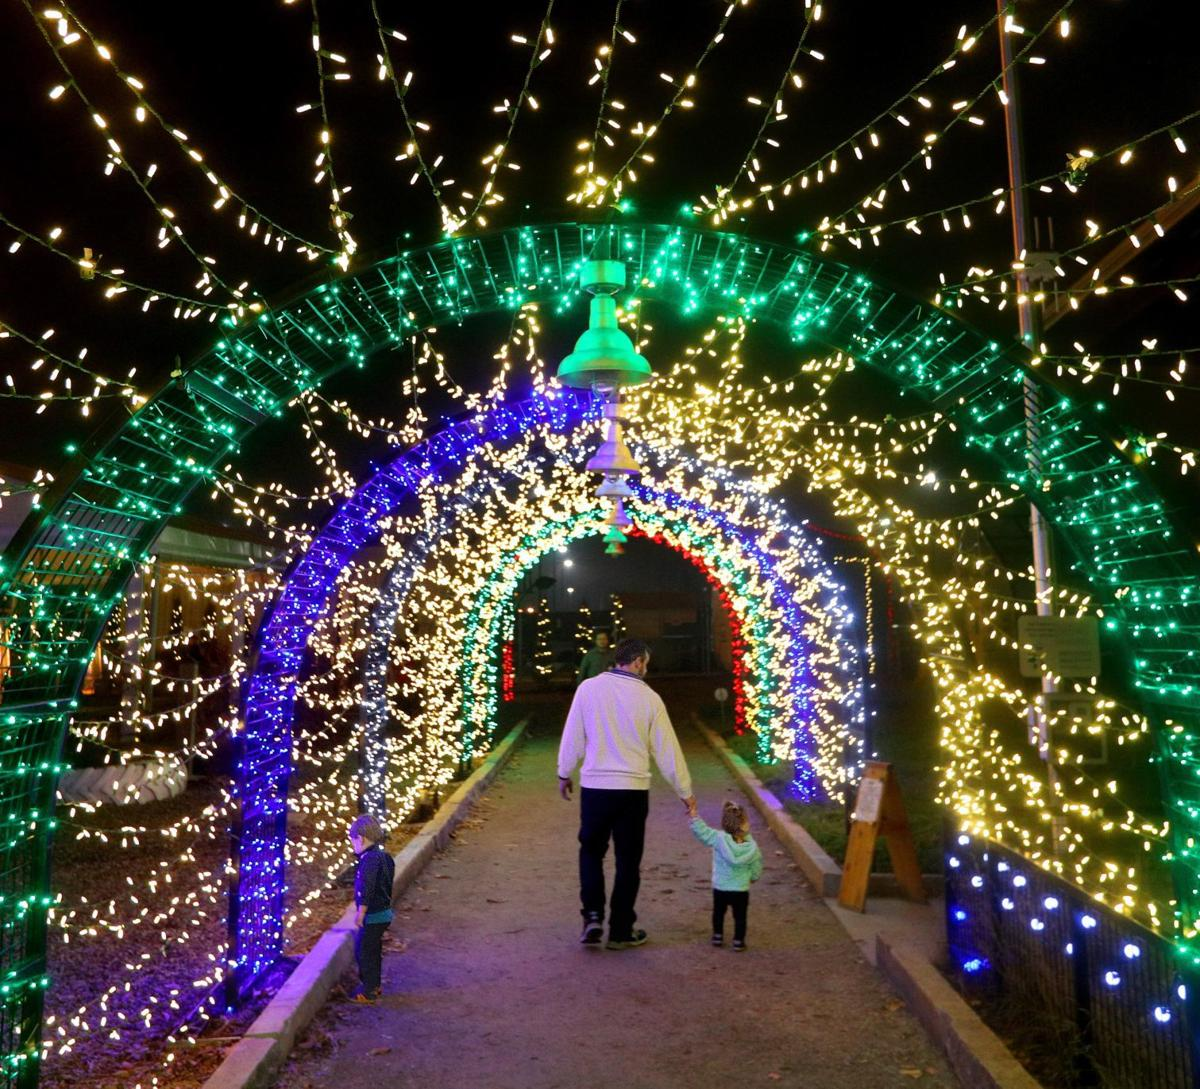 Science Center unveils its first holiday lights display